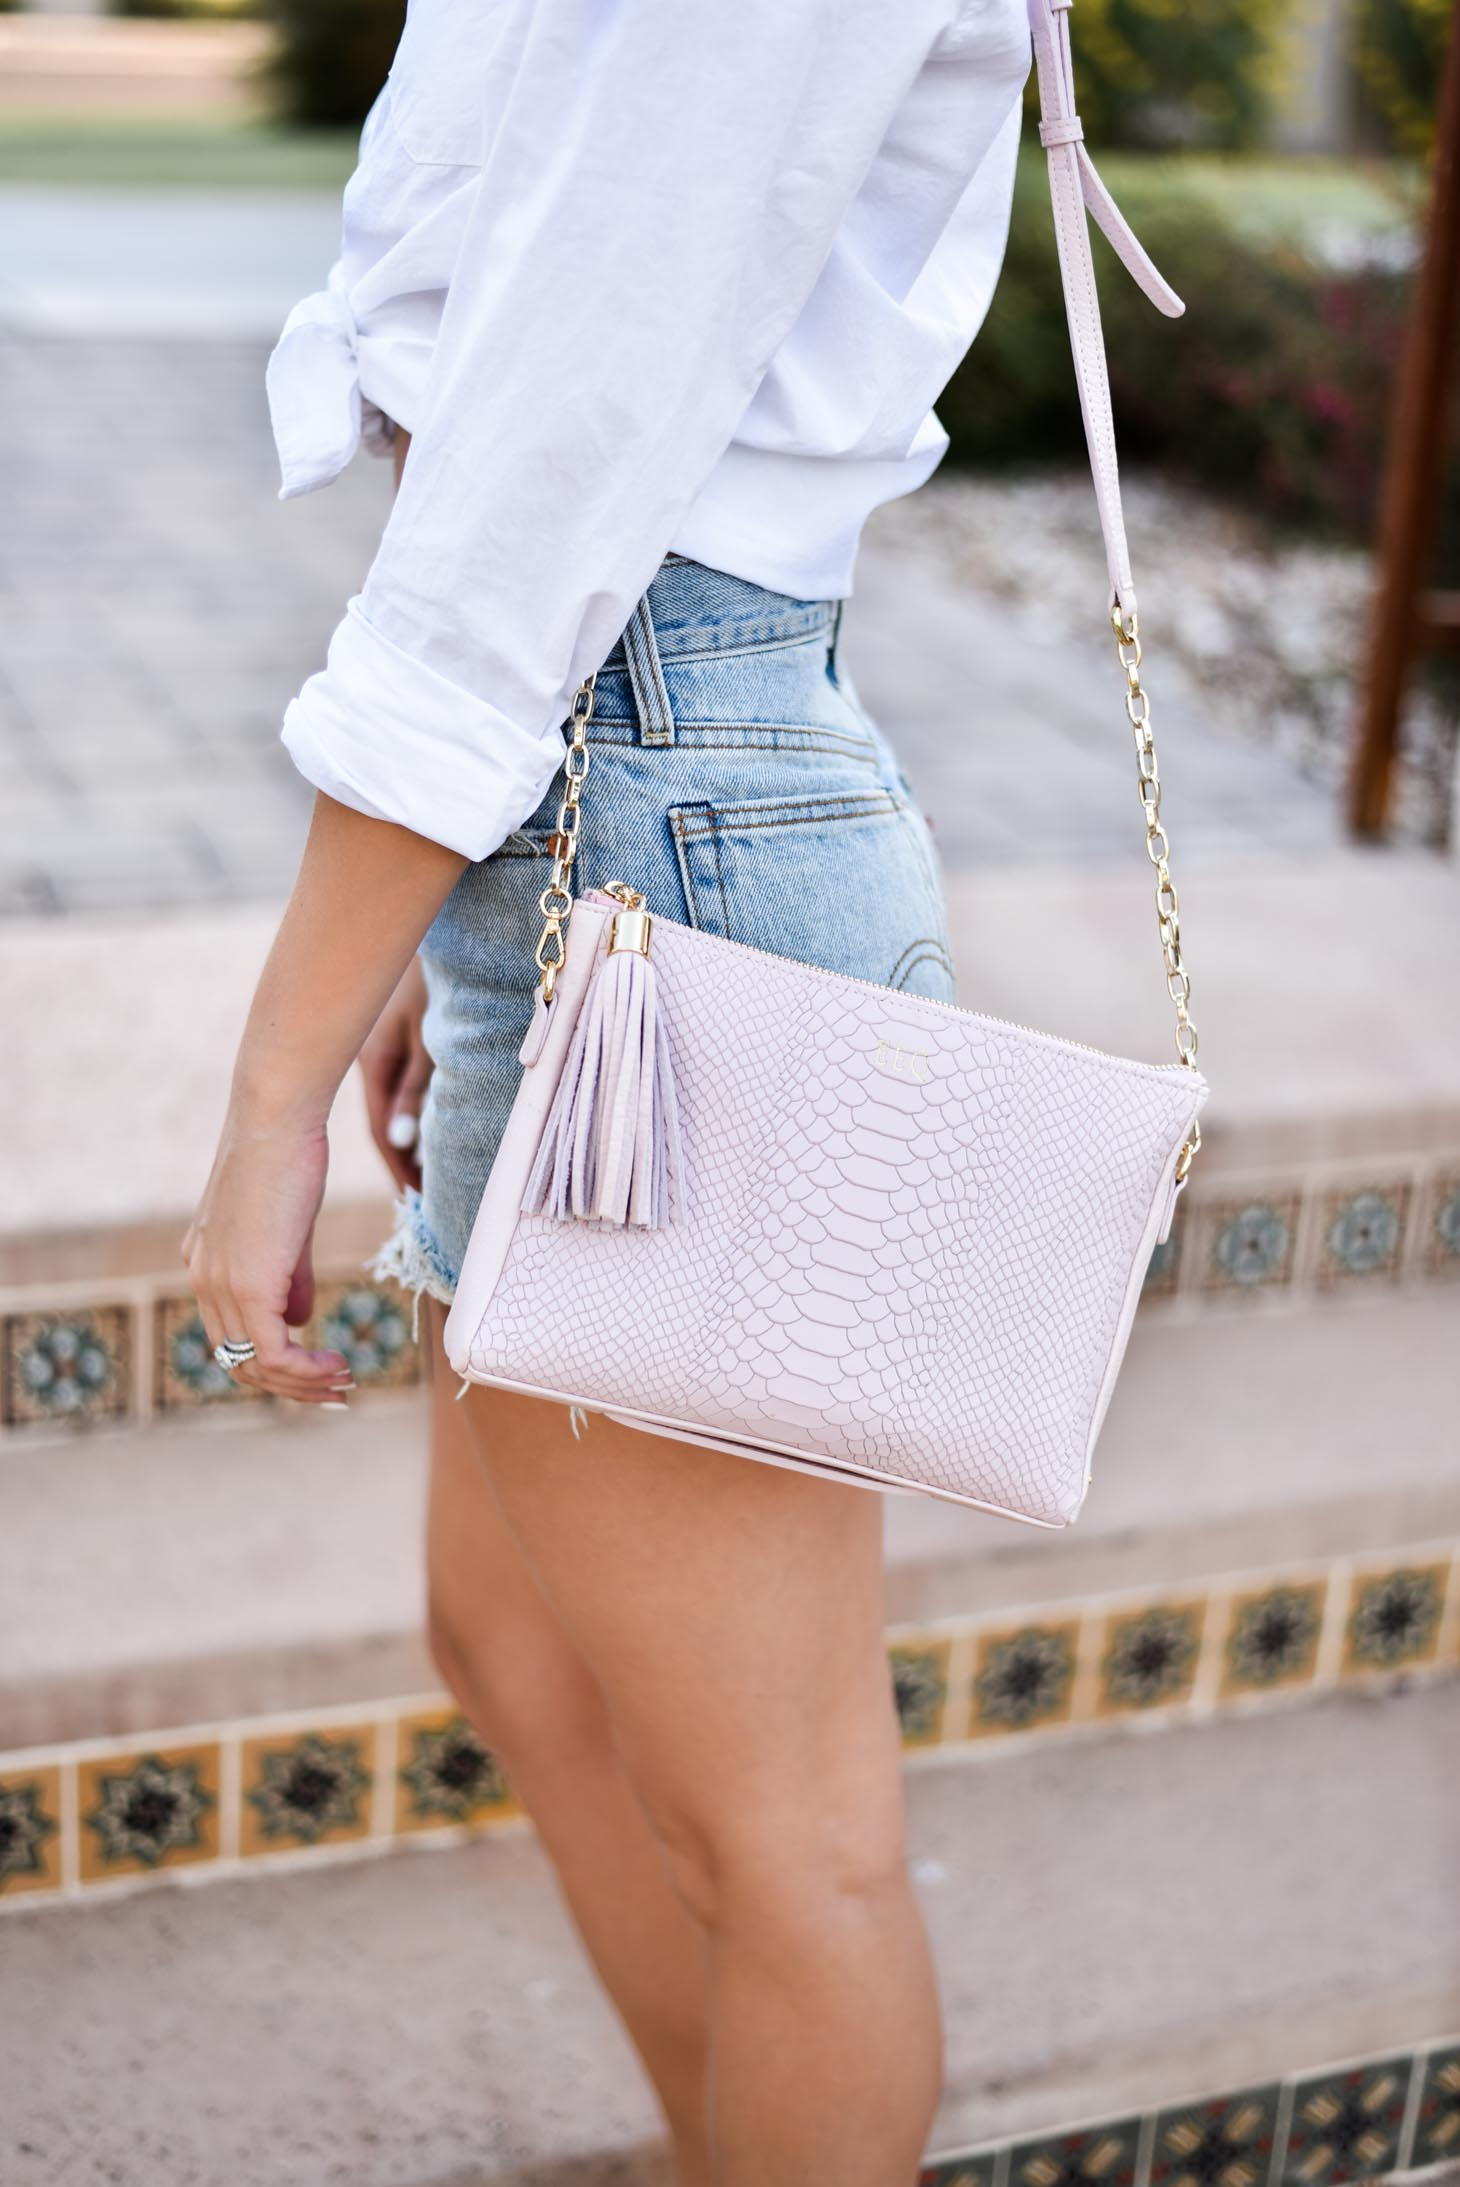 Erin Elizabeth of Wink and a Twirl shares this Gigi New York summer crossbody bag